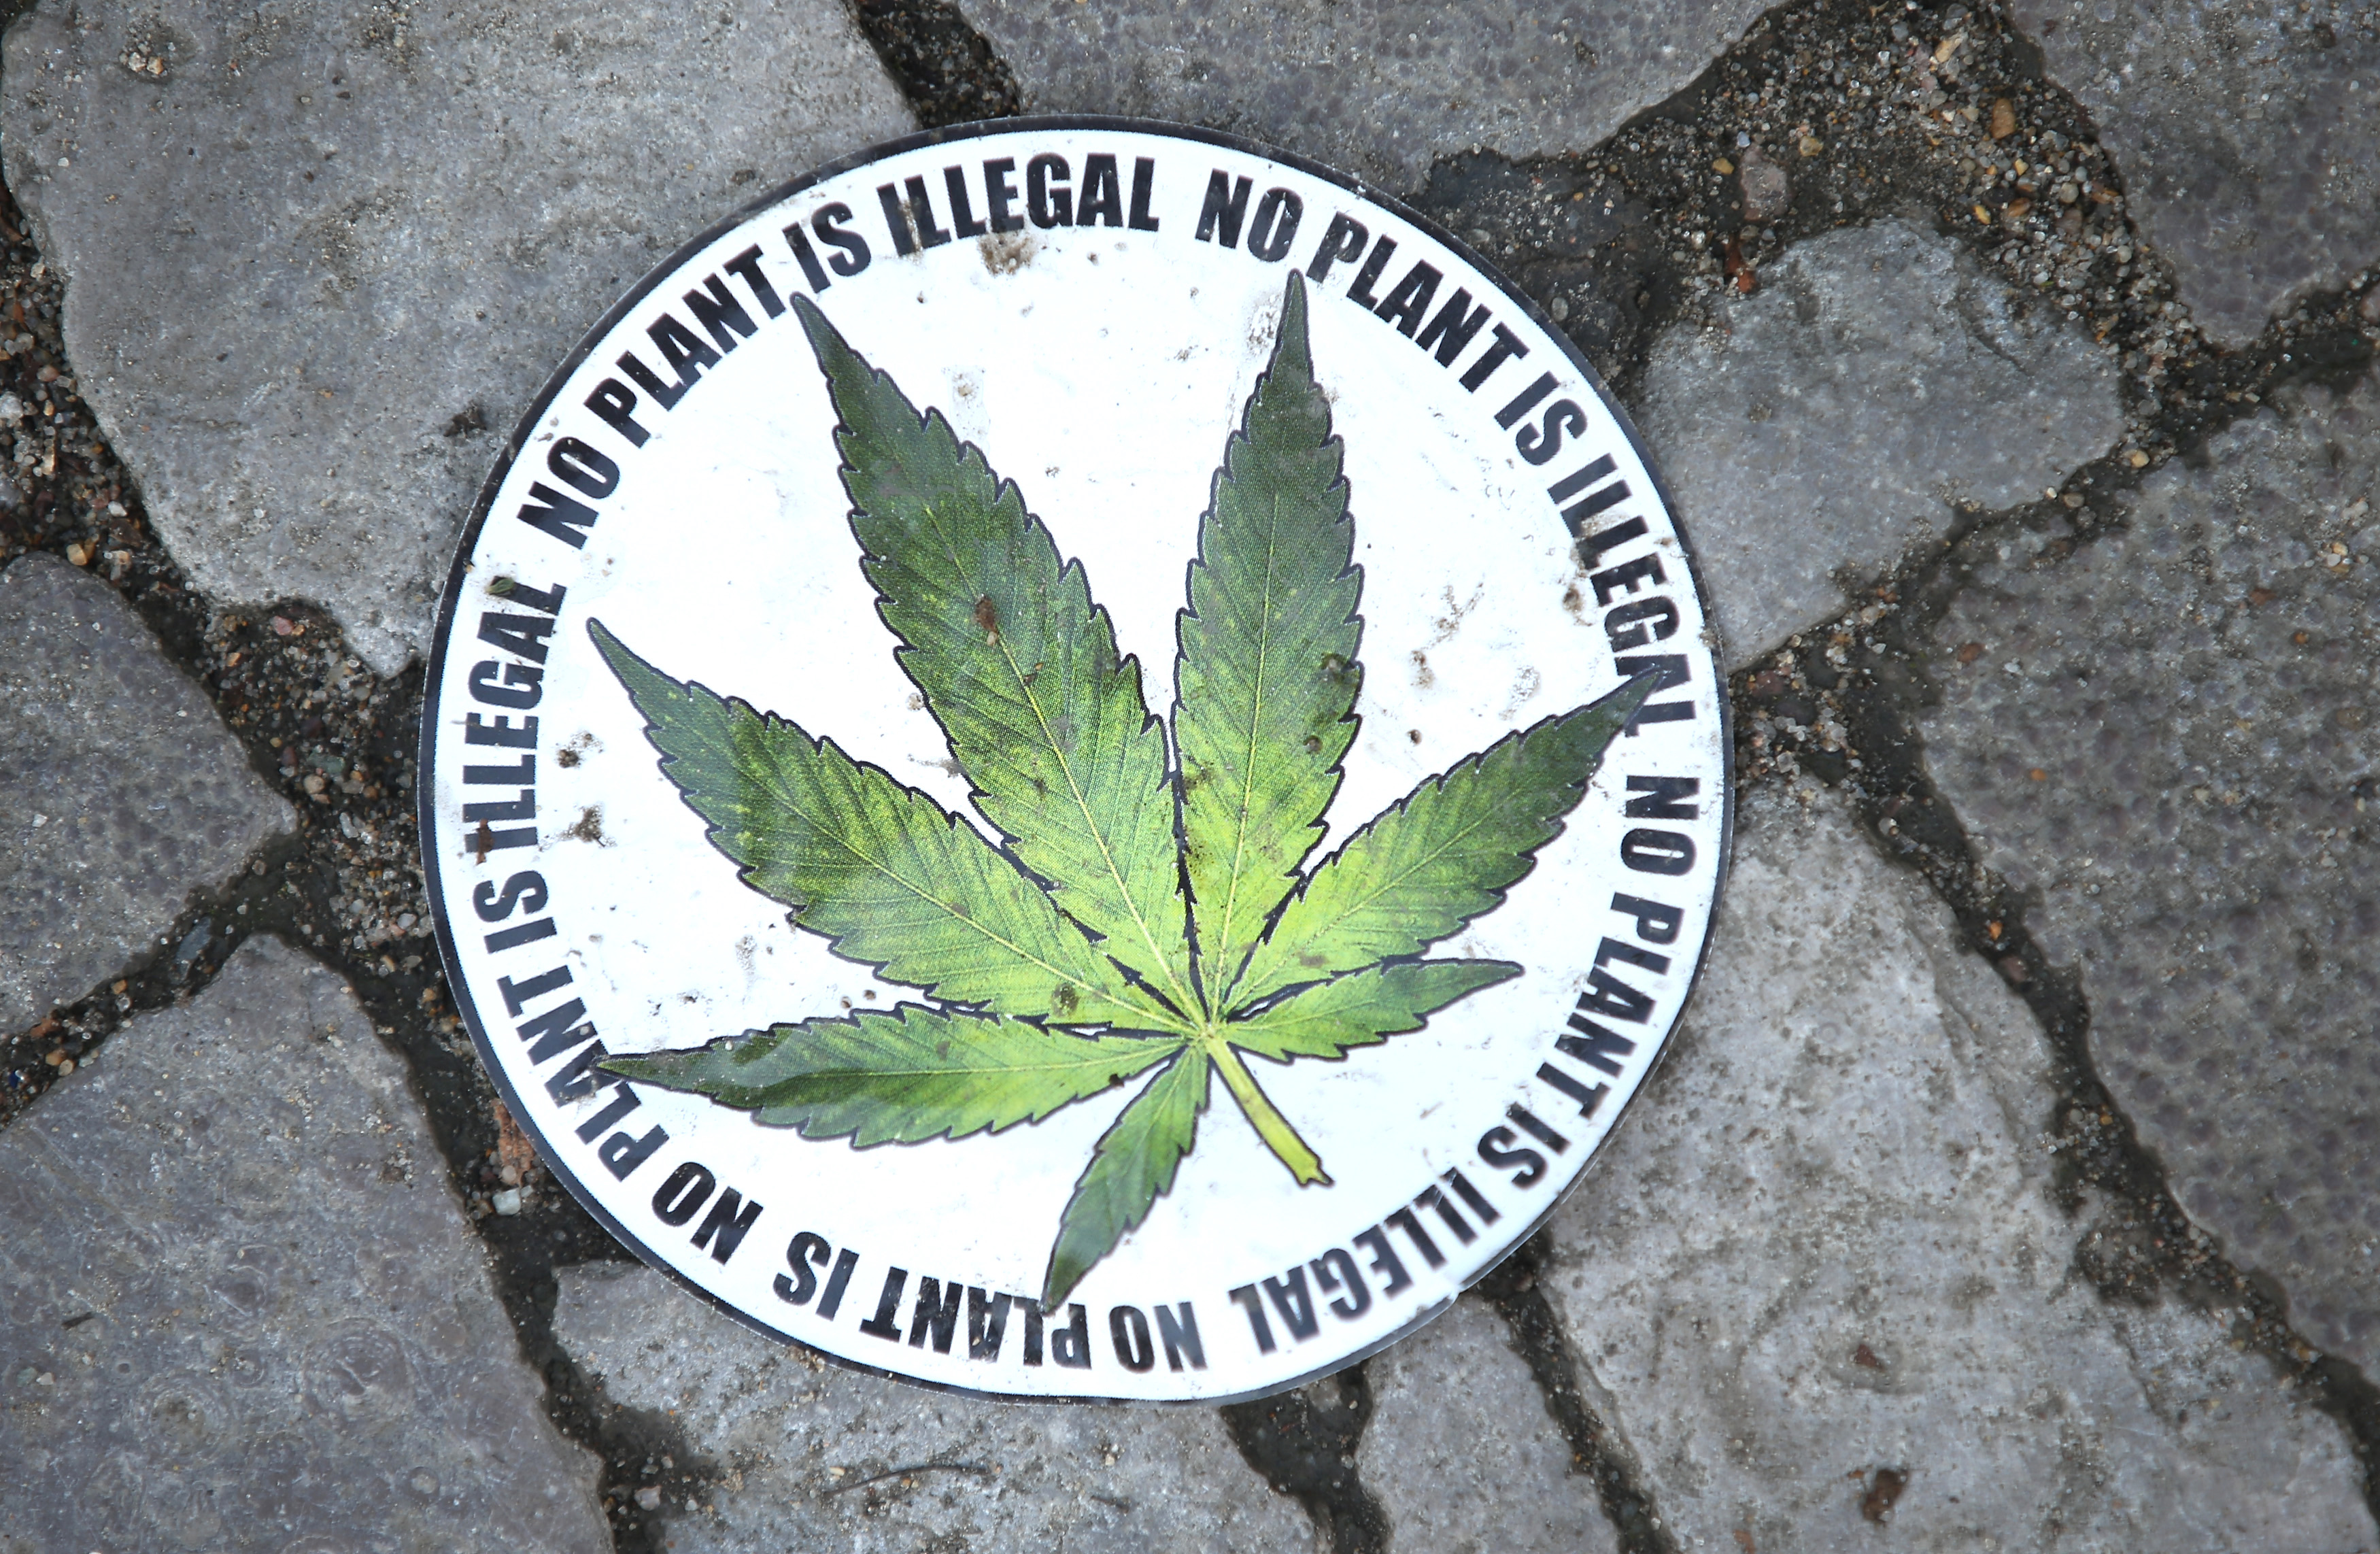 No plant is illegal